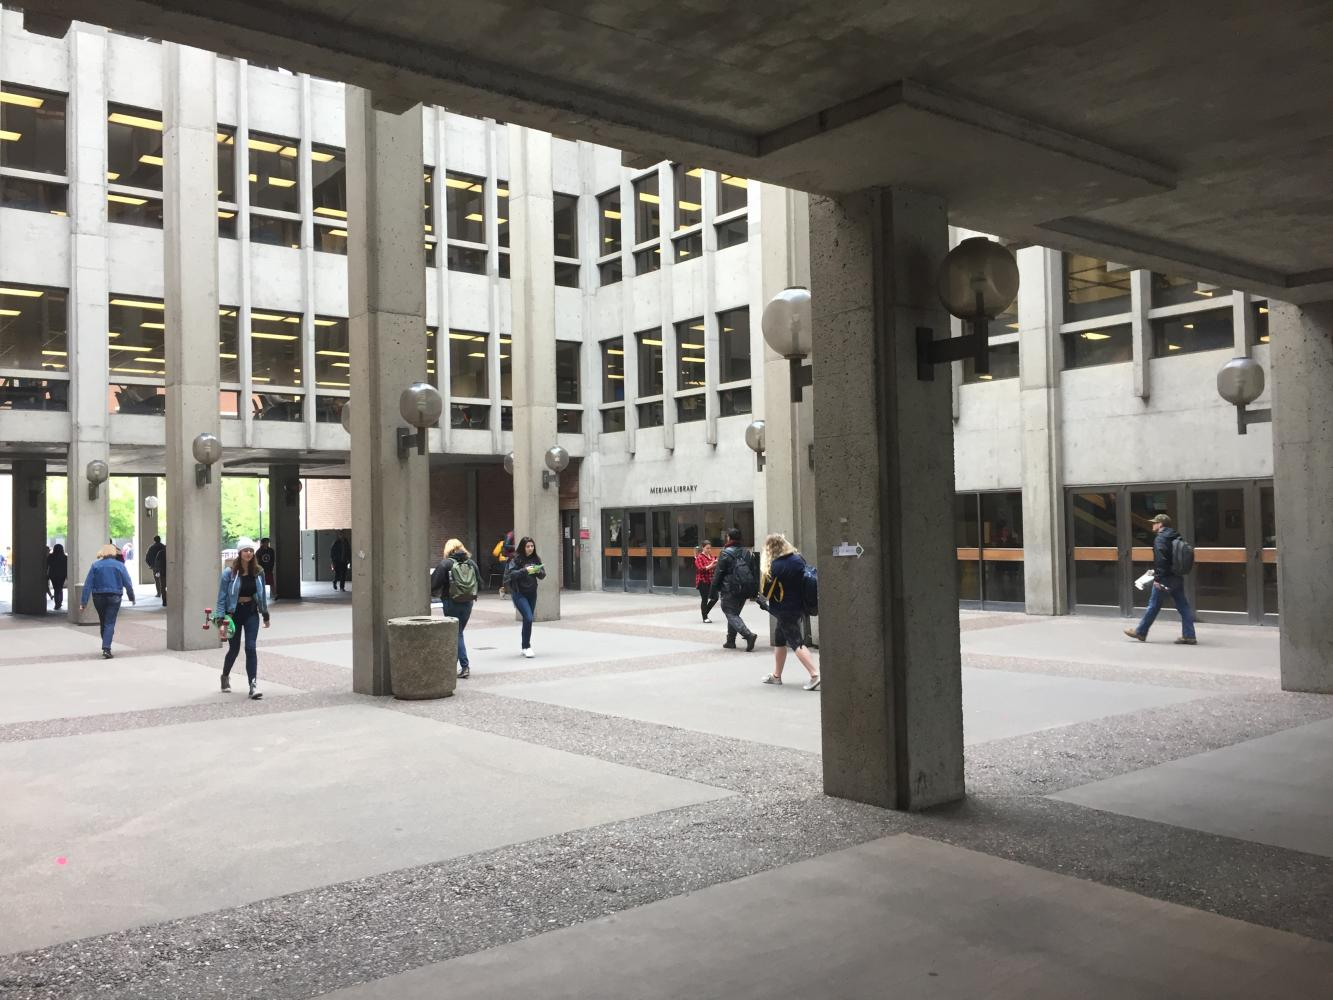 The breezeway of Meriam Library expected to dramatically change over summer break. Photo credit: Carly Campbell